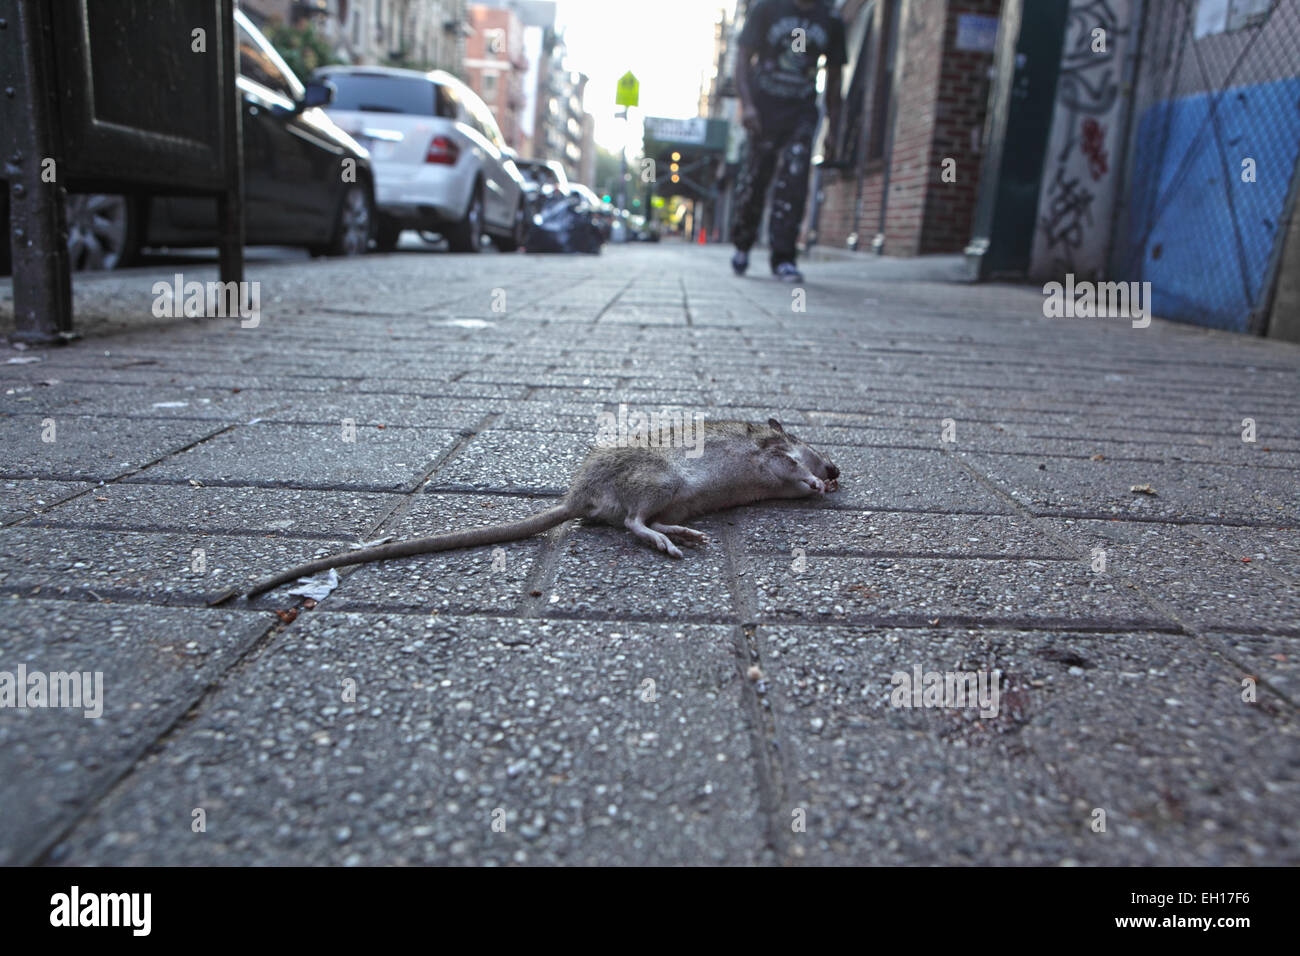 A dead rat lying on the sidewalk of Stanton Street on the Lower East Side of New York City. - Stock Image